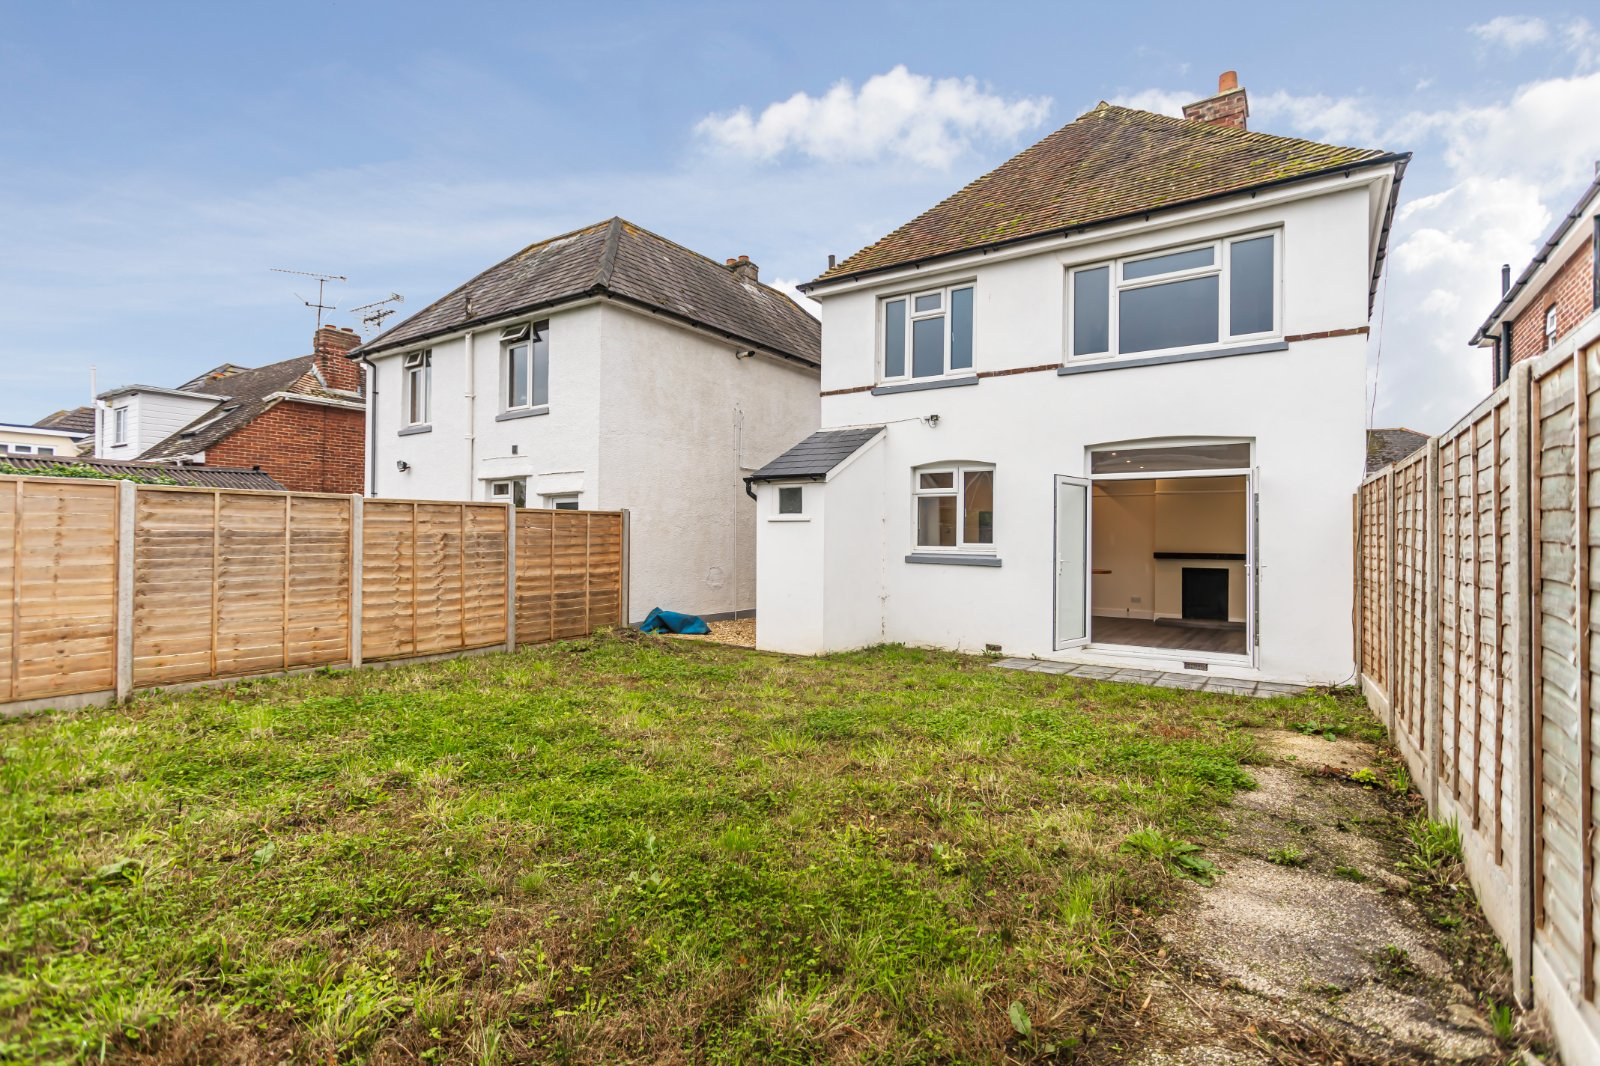 3 bed house for sale in Blandford Road, Poole 0